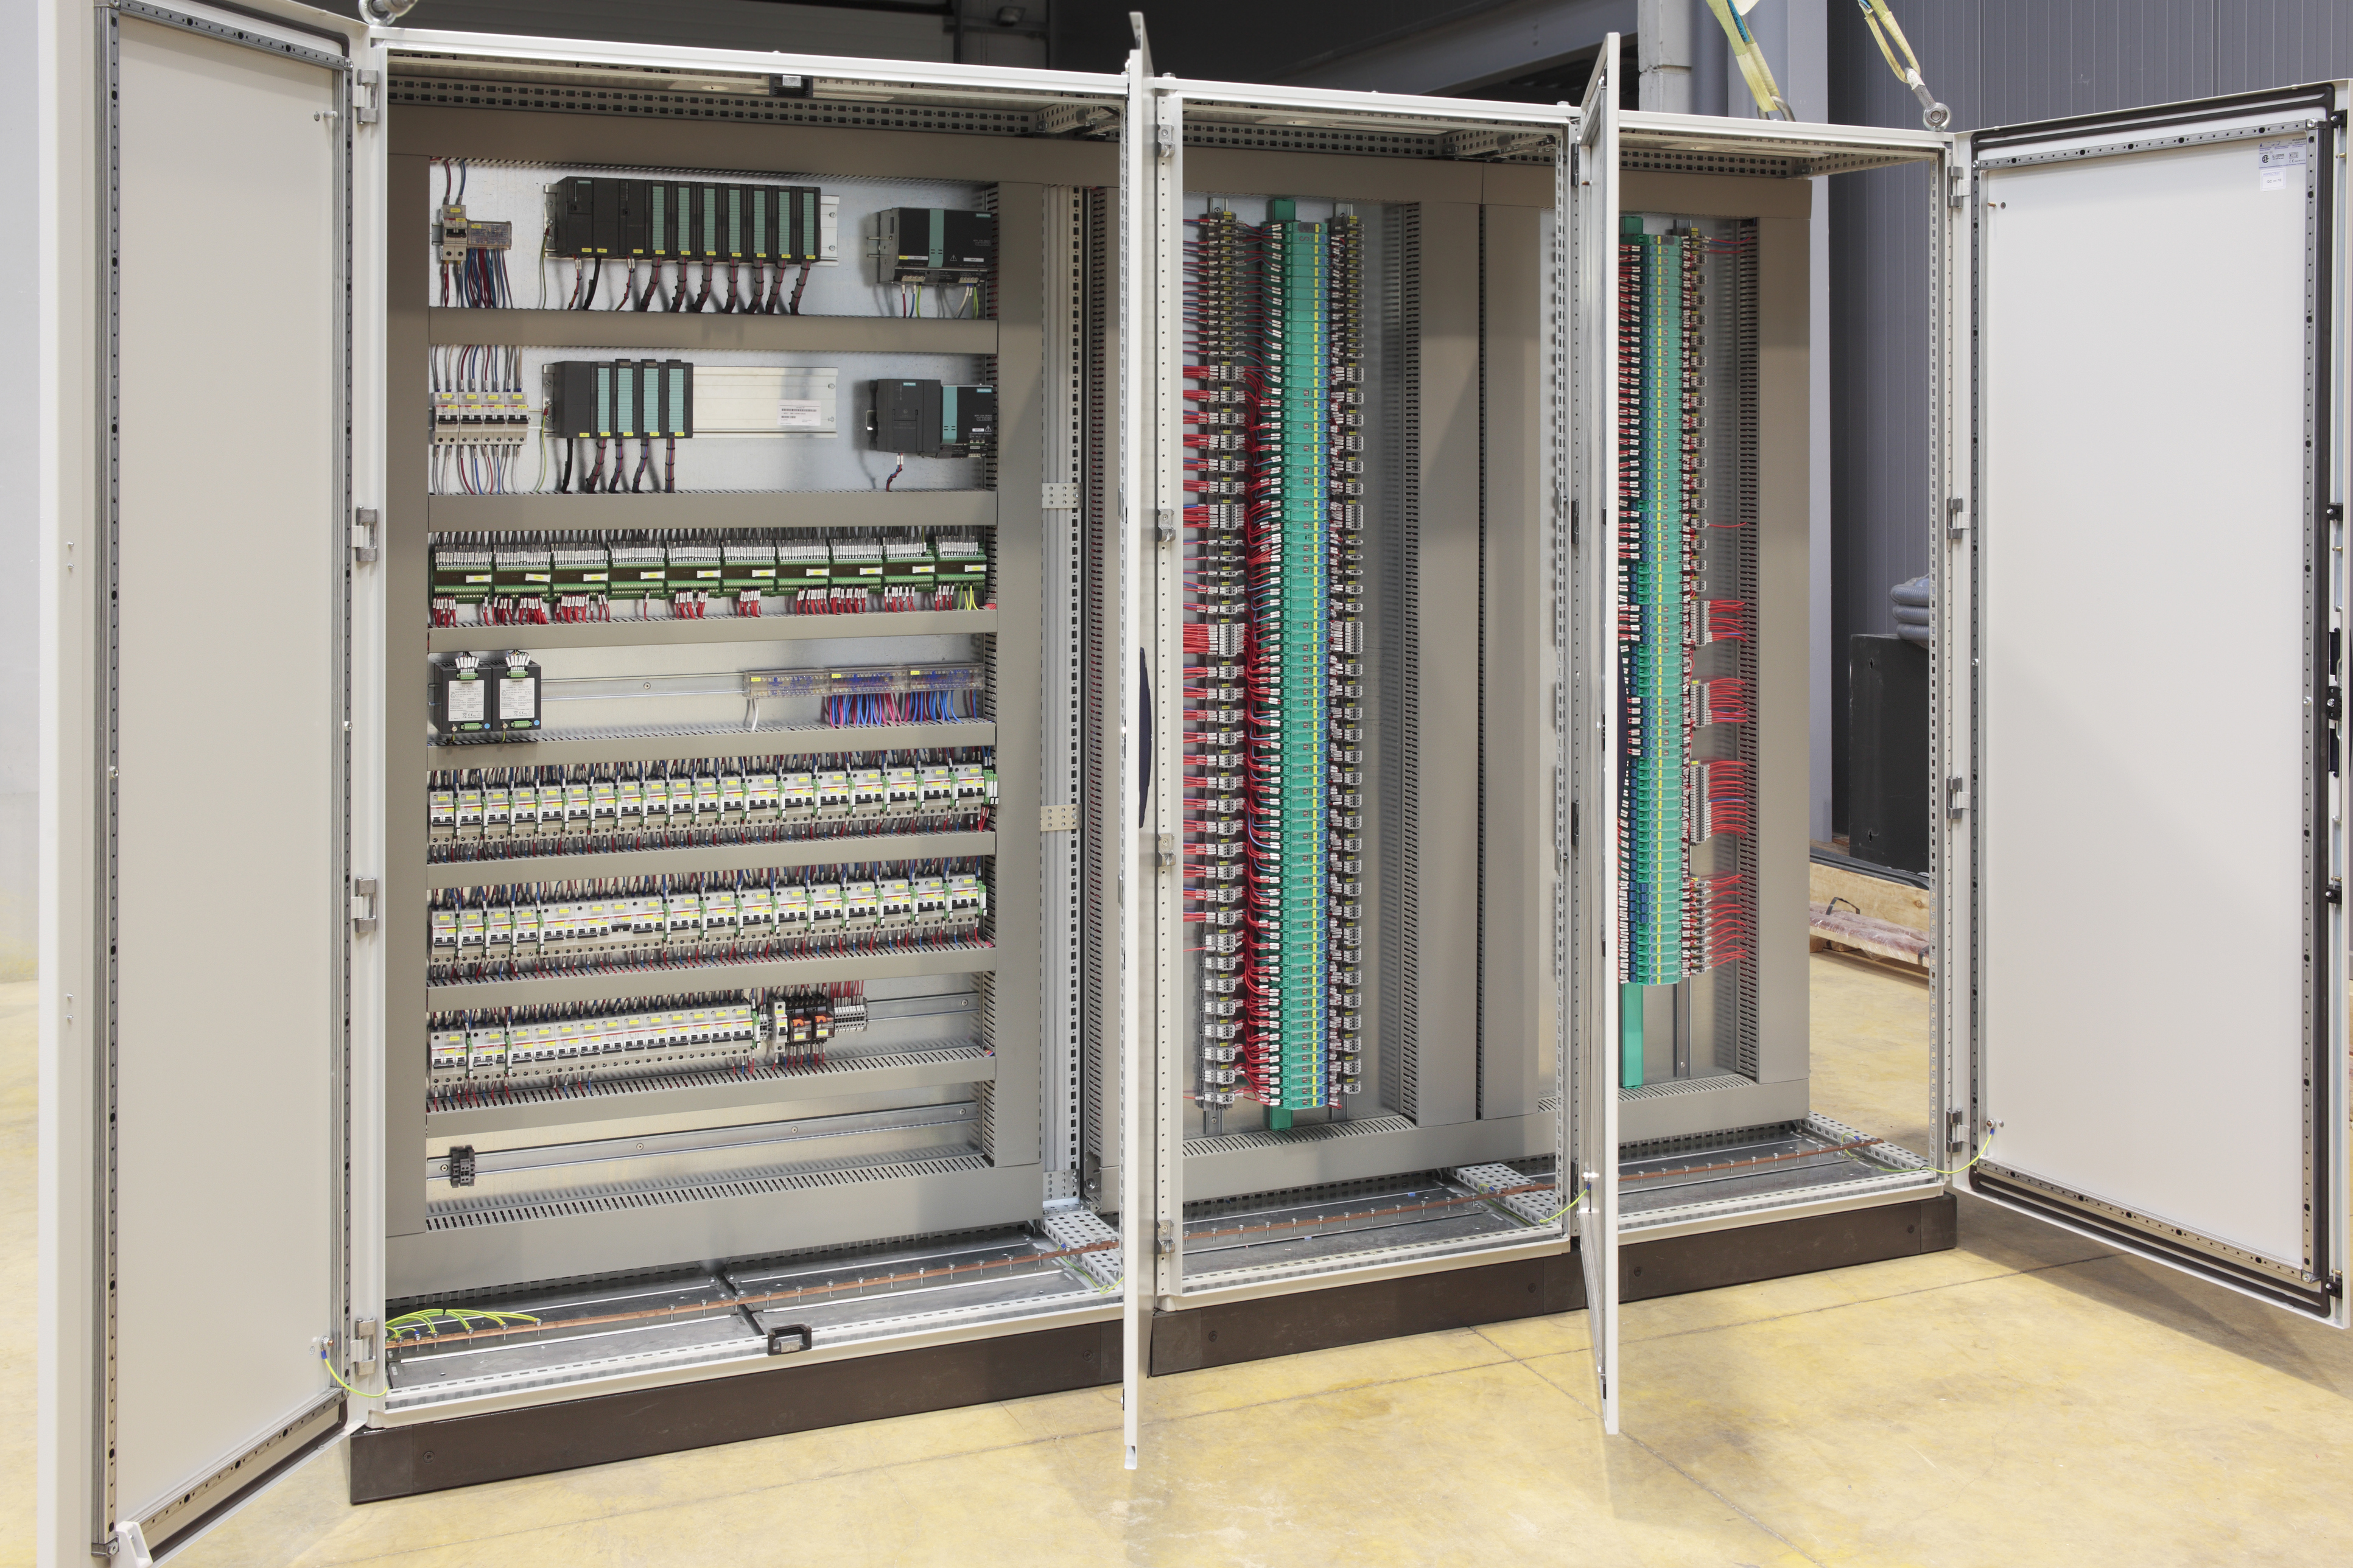 Ul508a Panel Shop Control Panels Xpect Solutions